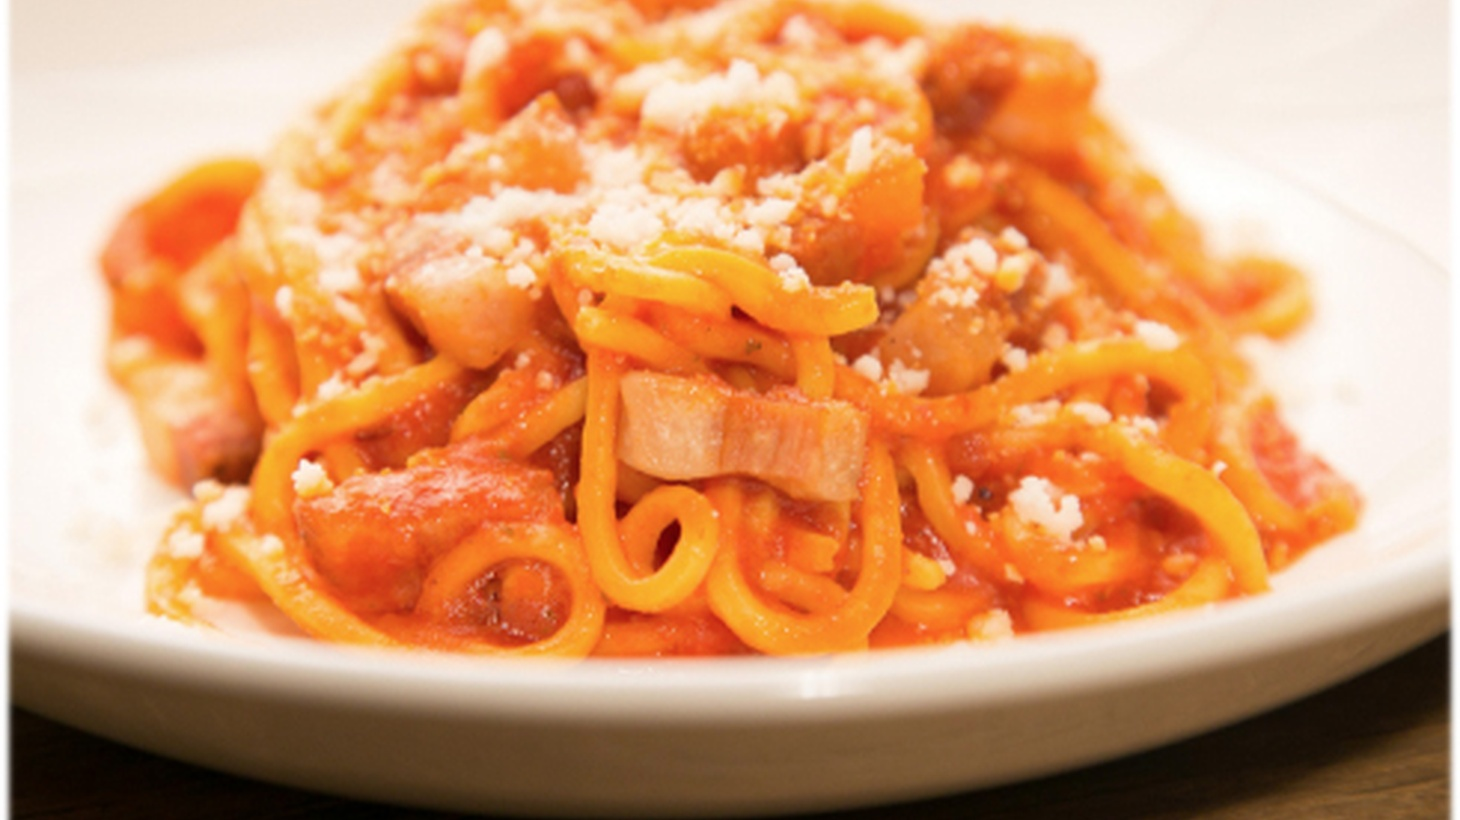 Jonathan Gold is hesitant to admit that the best spaghetti all'amatriciana in Los Angeles is served at a Santa Monica fast-casual eatery.